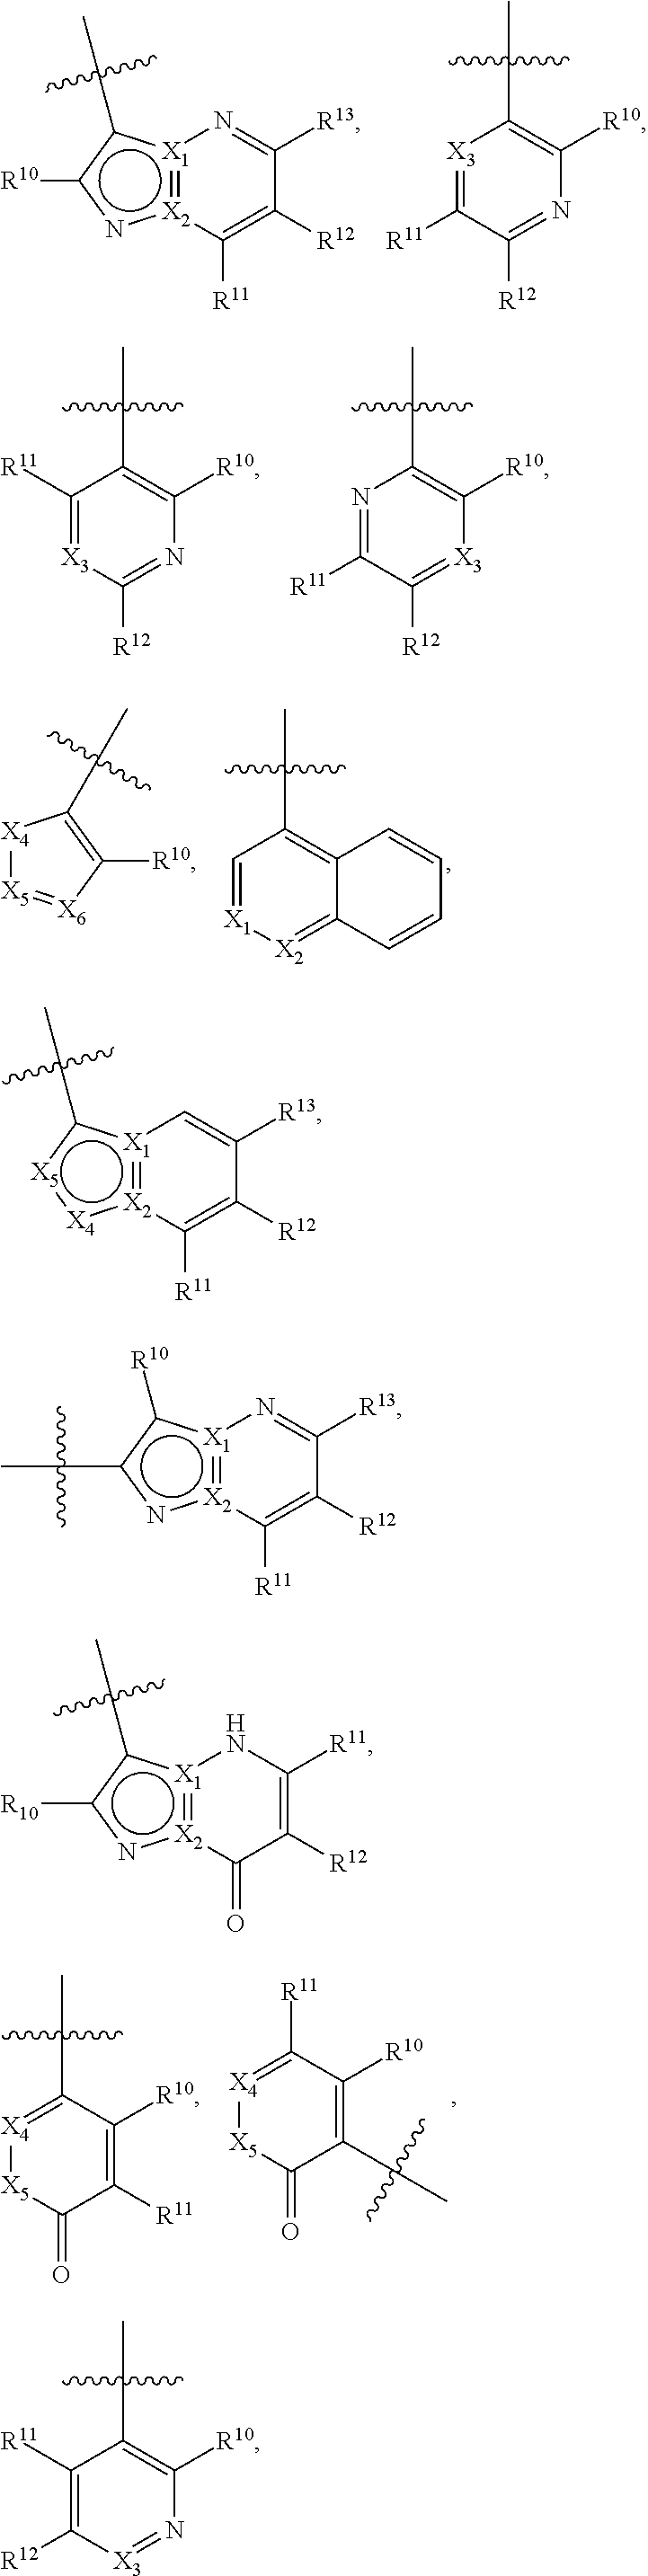 Us20130267521a1 Heterocyclic Compounds And Uses Thereof Google R13 135 Switch Wiring Diagram Figure 20131010 C00023